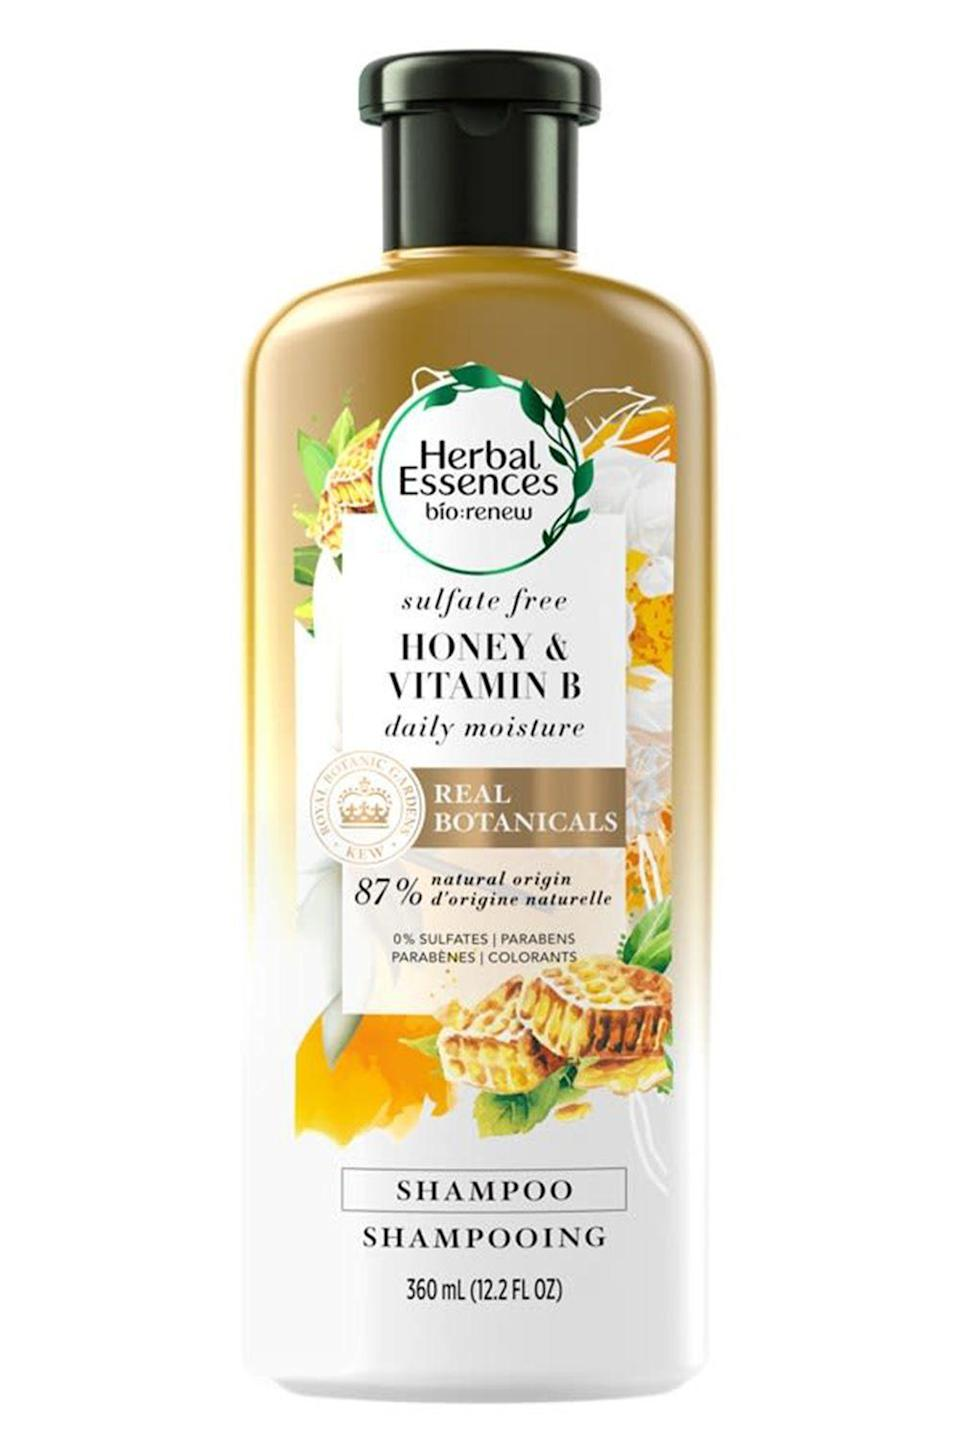 """<p><strong>Herbal Essences</strong></p><p>target.com</p><p><strong>$5.99</strong></p><p><a href=""""https://www.target.com/p/herbal-essences-bio-renew-honey-38-vitamin-b-conditioner-13-5-fl-oz/-/A-75563370"""" rel=""""nofollow noopener"""" target=""""_blank"""" data-ylk=""""slk:Shop Now"""" class=""""link rapid-noclick-resp"""">Shop Now</a></p><p>This <a href=""""https://www.cosmopolitan.com/style-beauty/beauty/g25019634/best-drugstore-shampoo-brands/"""" rel=""""nofollow noopener"""" target=""""_blank"""" data-ylk=""""slk:drugstore shampoo"""" class=""""link rapid-noclick-resp"""">drugstore shampoo</a> for damaged hair is <strong>l</strong><strong>oaded with moisturizing honey and all-natural botanicals</strong> to make your hair feel soft and smooth without having to use a ton of styling products. Plus, it's <a href=""""https://www.ewg.org/?gclid=CjwKCAiA8qLvBRAbEiwAE_ZzPY4nArPevdCJ6GcrBOwM23cvWzHWbSJxW9TQgc7m_z5qcrBKNXSxGRoCpFYQAvD_BwE"""" rel=""""nofollow noopener"""" target=""""_blank"""" data-ylk=""""slk:EWG-verified"""" class=""""link rapid-noclick-resp"""">EWG-verified</a> (basically, confirmed to be safe for you) and made without potentially sketchy ingredients like parabens, silicones, SLS, or mineral oil.</p>"""